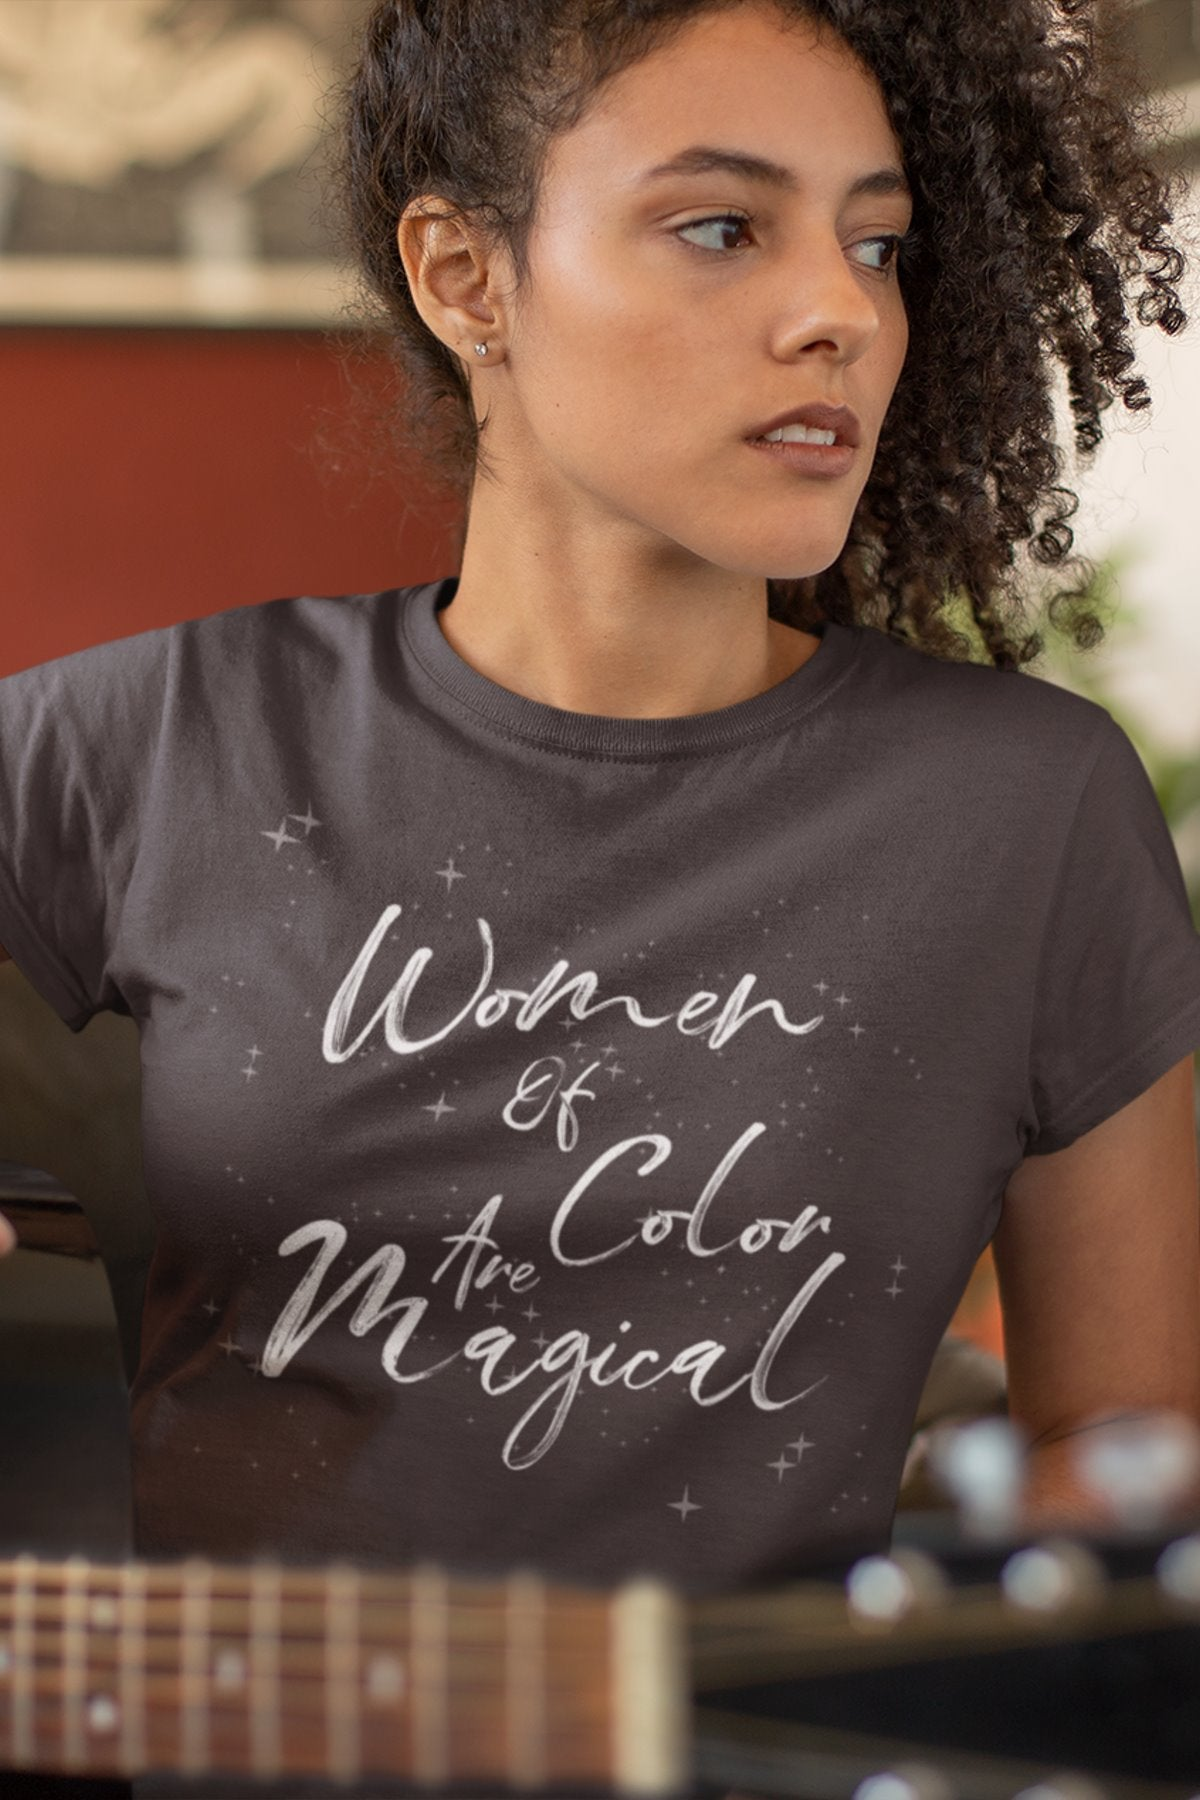 Women of Color Are Magical - Unisex Shirt